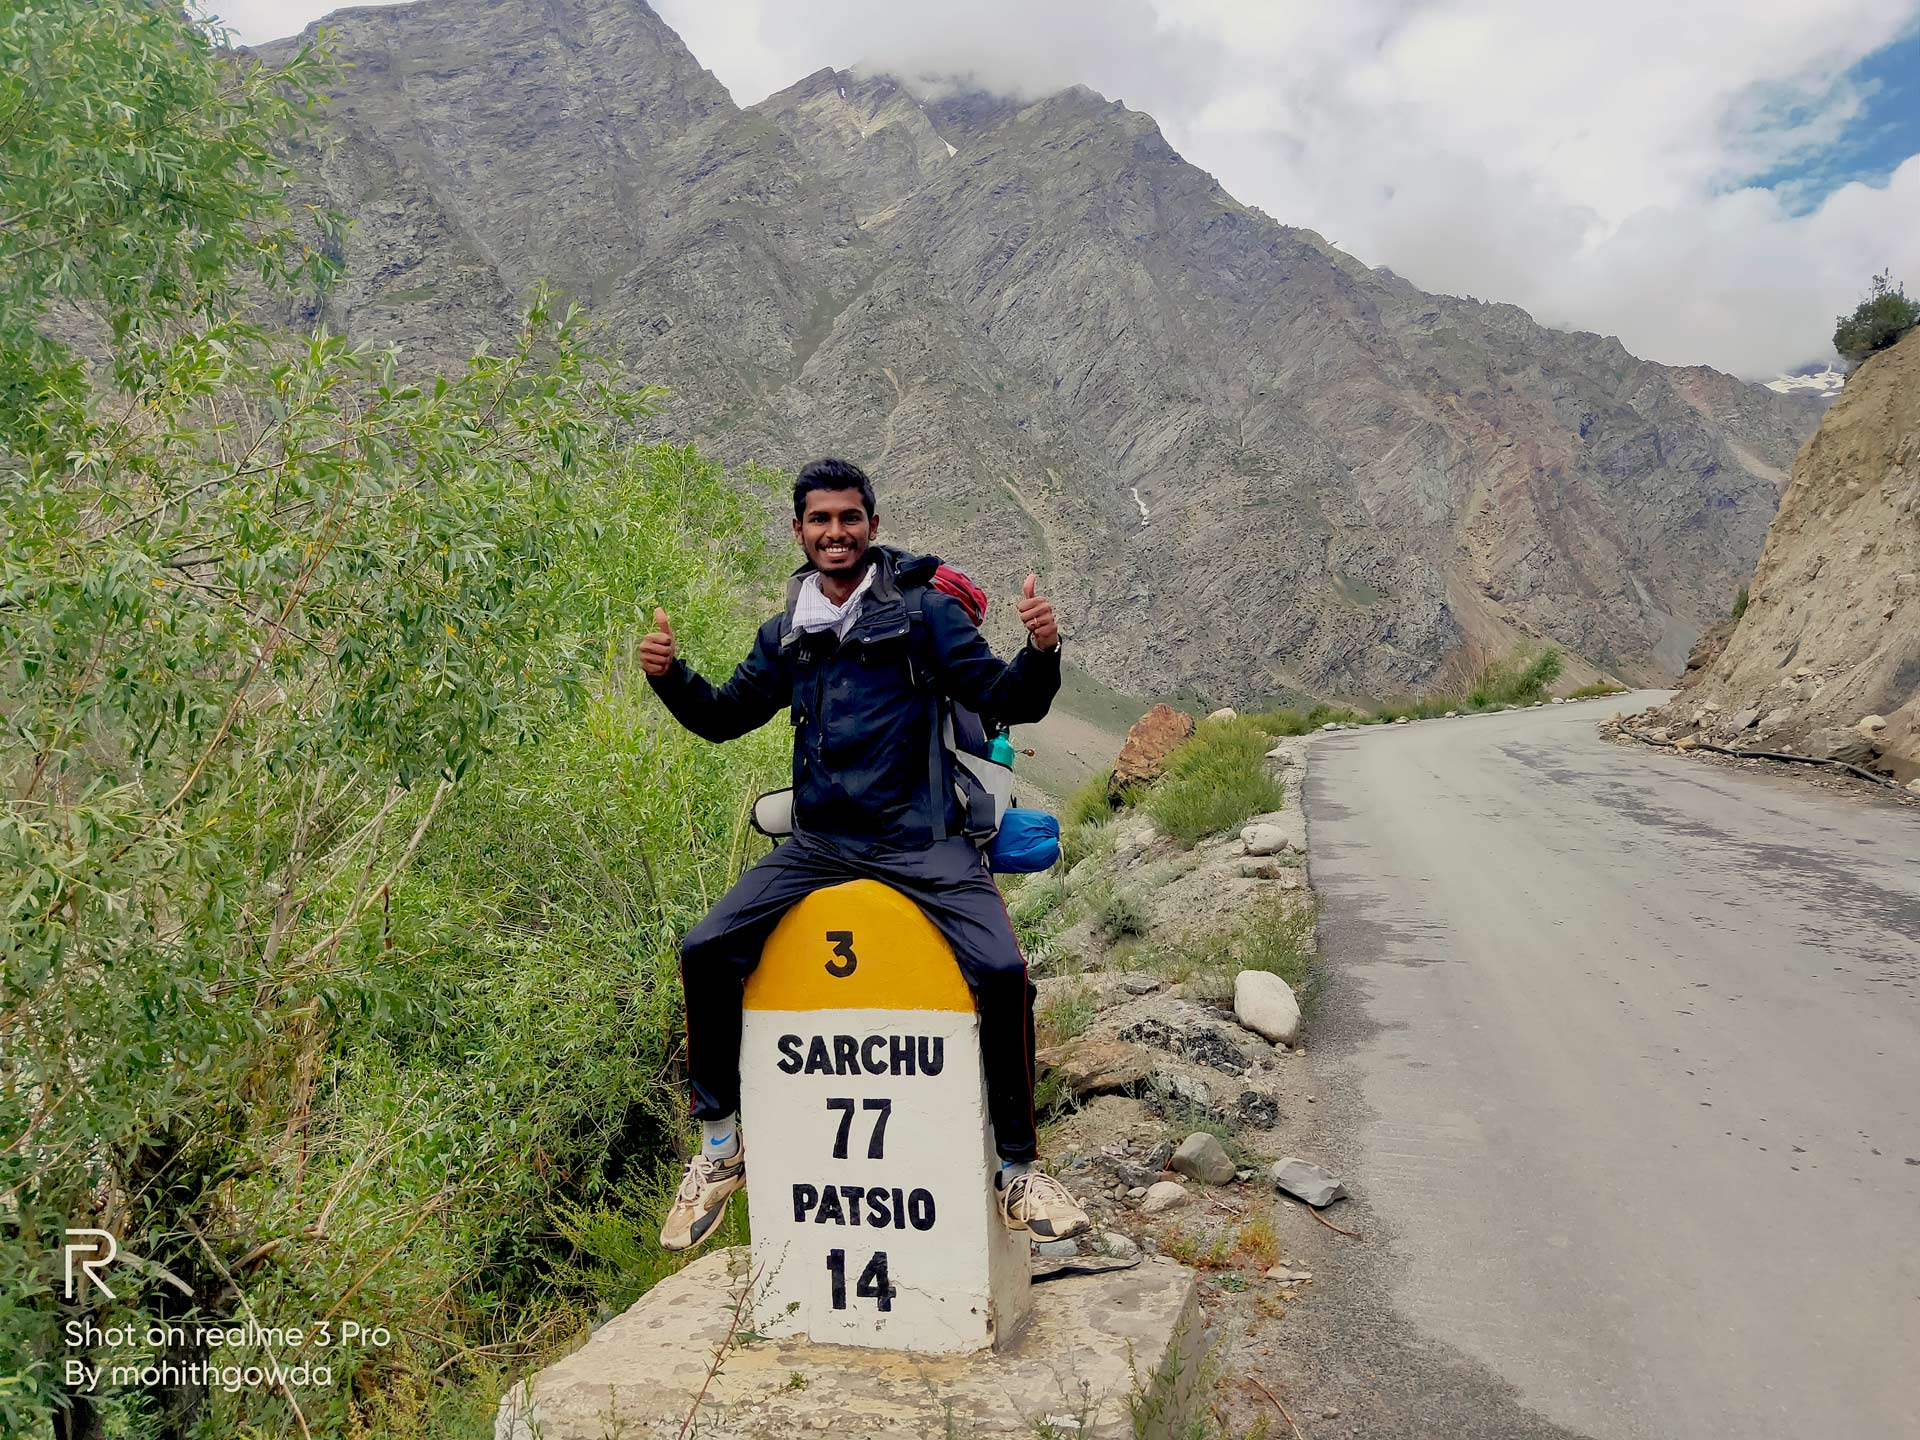 Mohith Gowda near Sarchu on his wal from Manali to Kharadung La